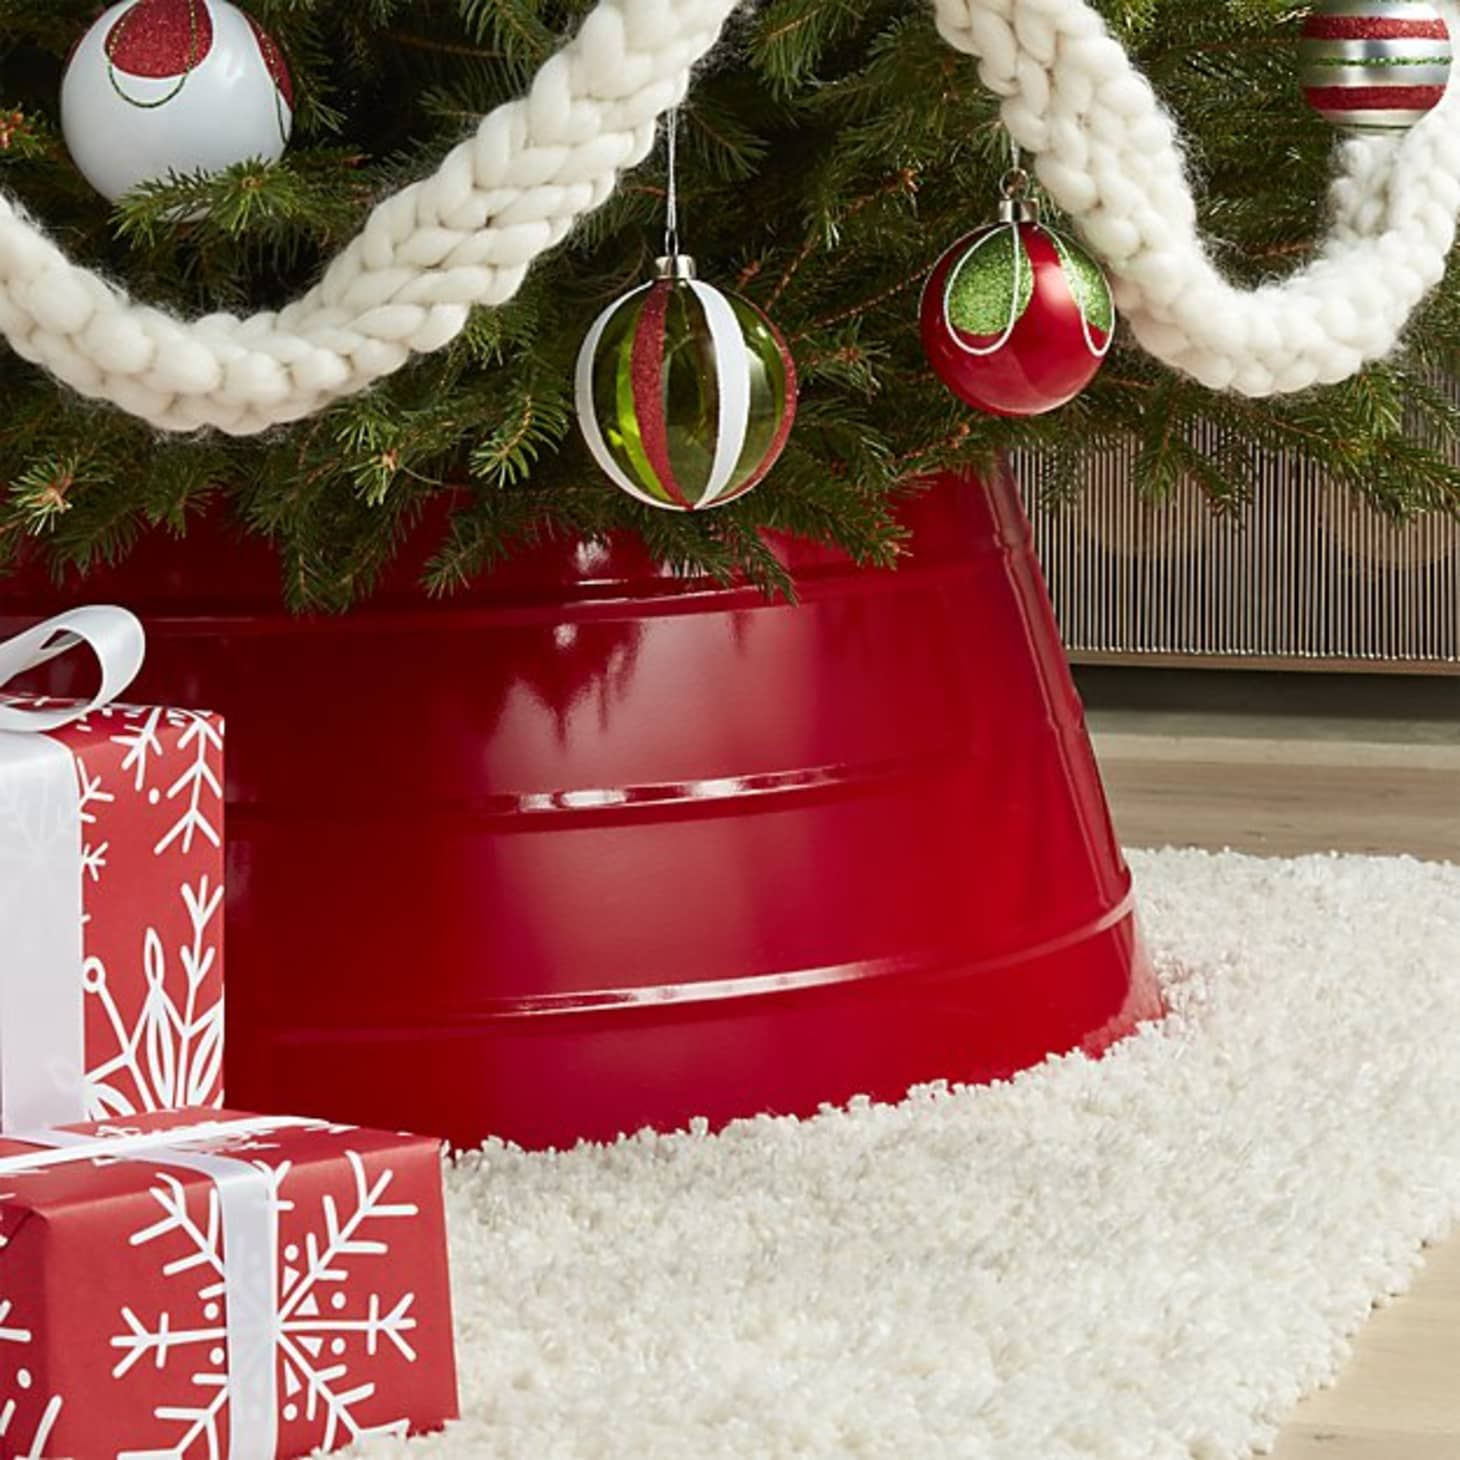 Christmas Crate And Barrel.What Are Christmas Tree Collars Where To Get Them